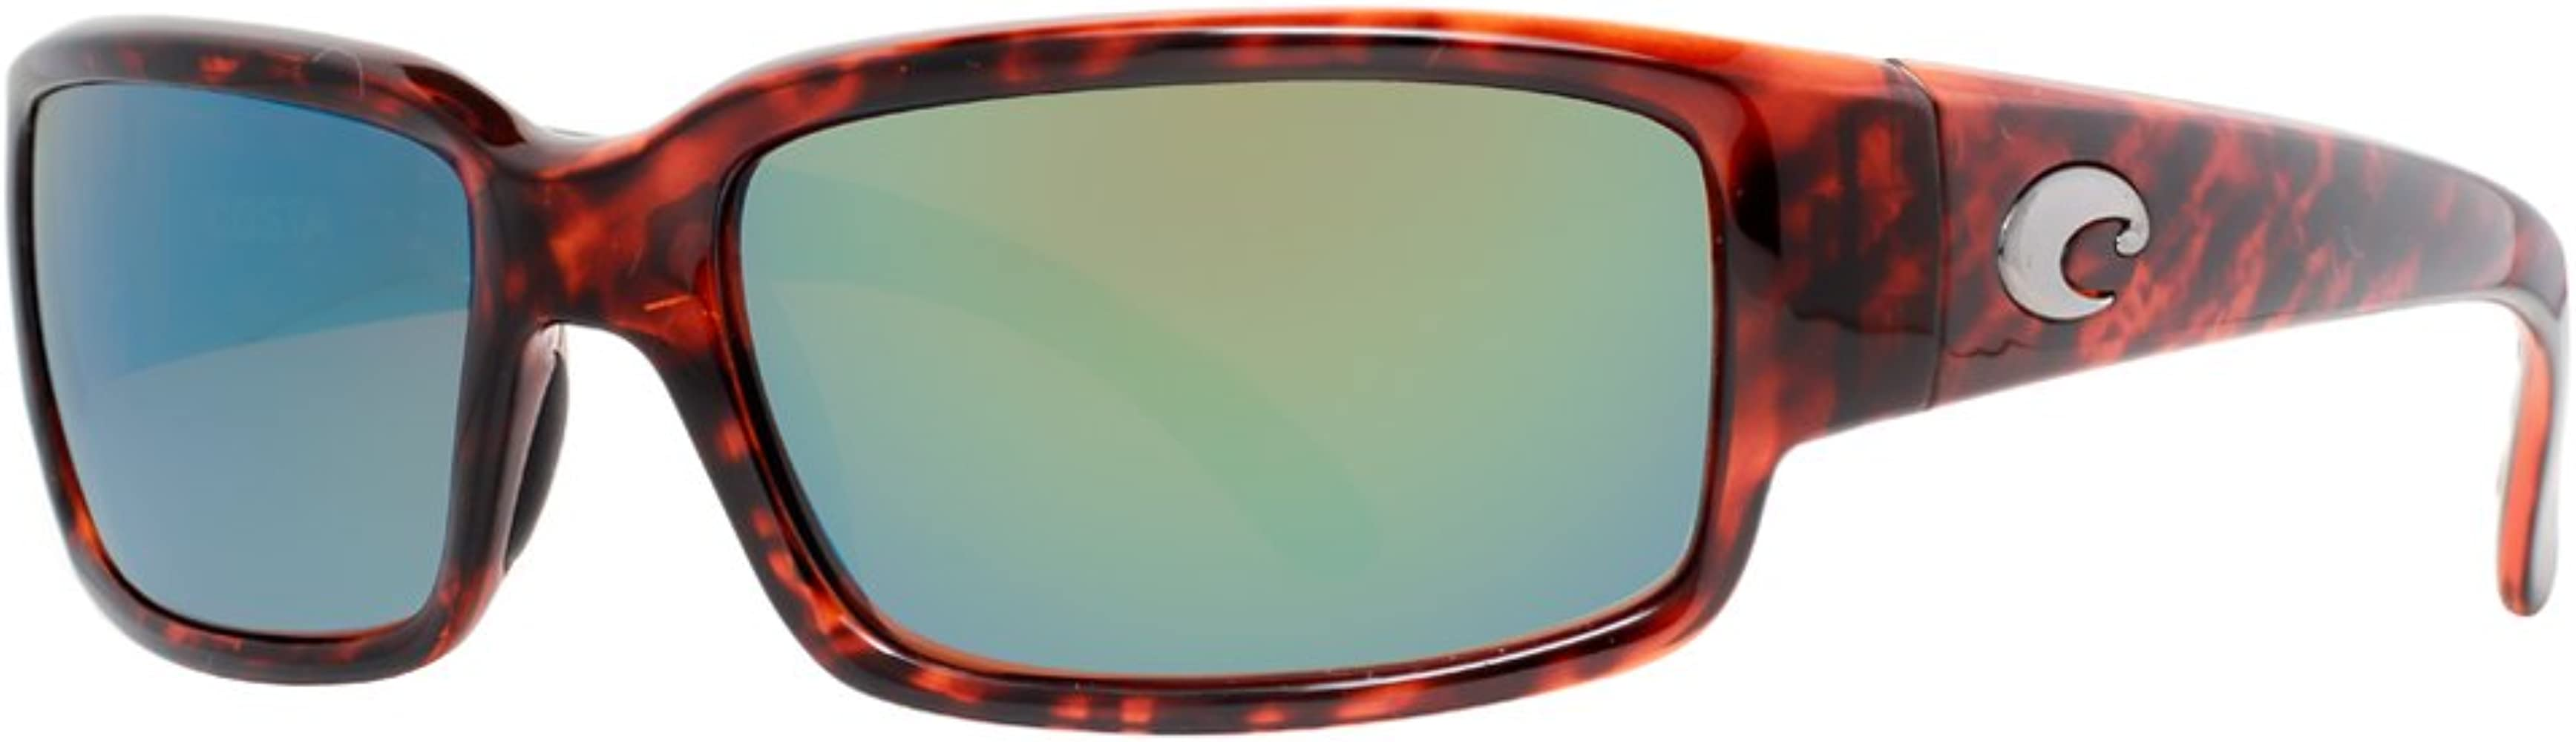 Green Mirror Lens Costa Del Mar 580g CABALLITO Tortoise Sunglasses